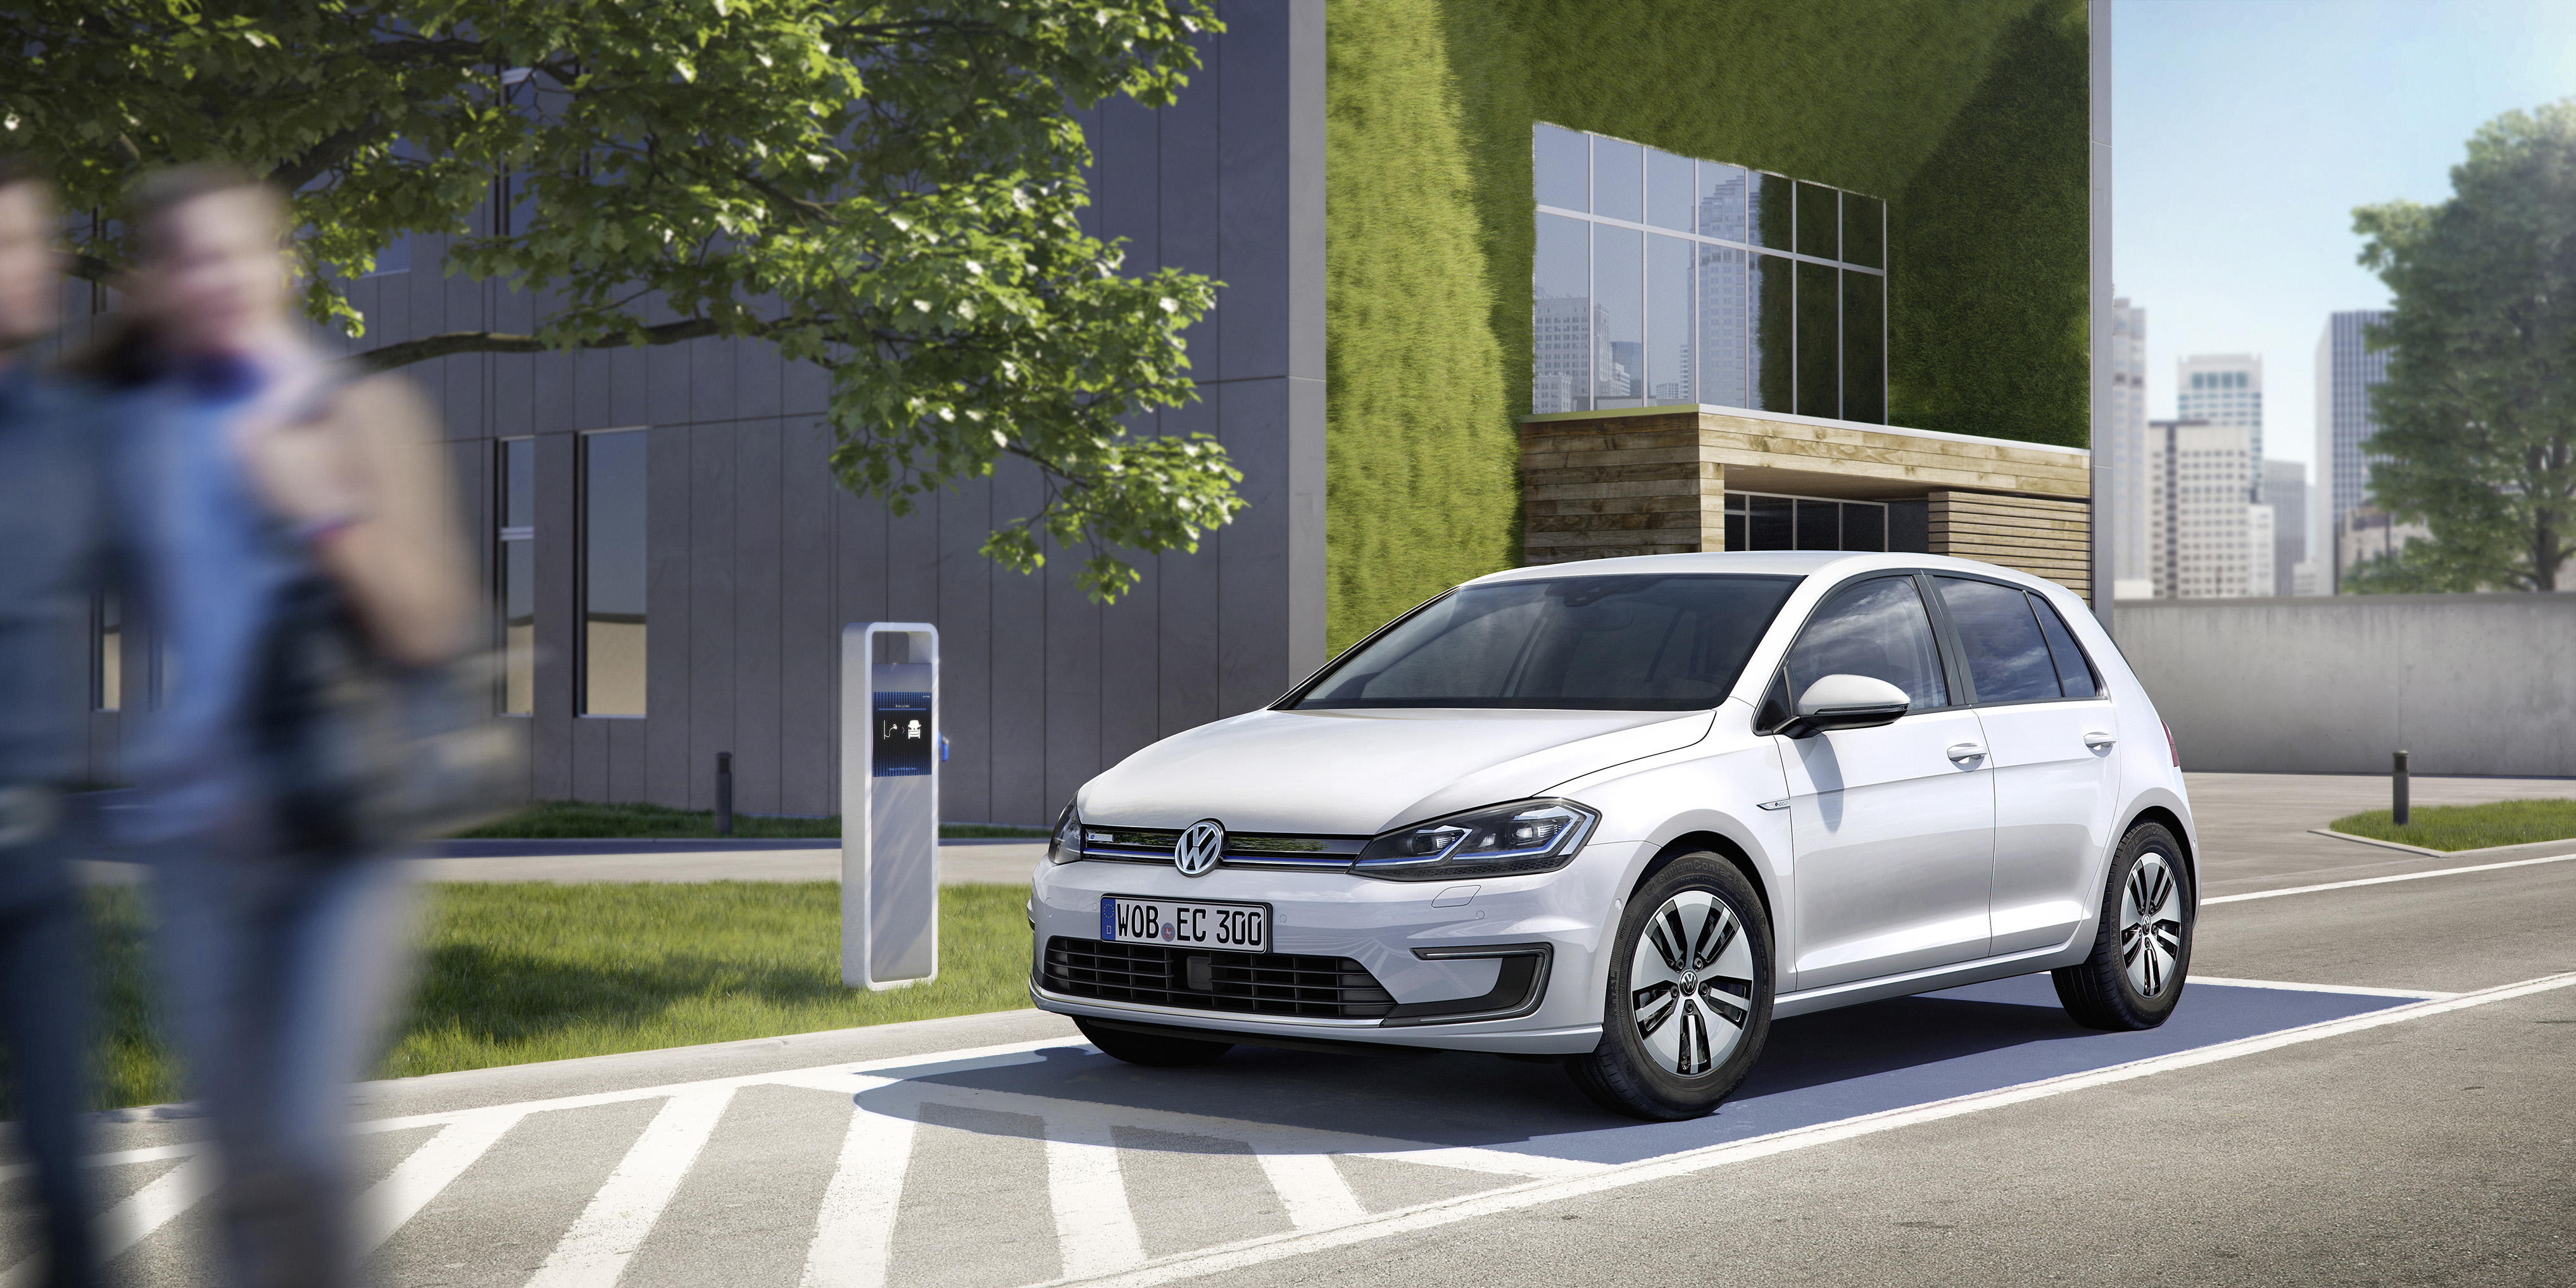 Vw Plan To Electrify America Includes 500 Charging Points Across